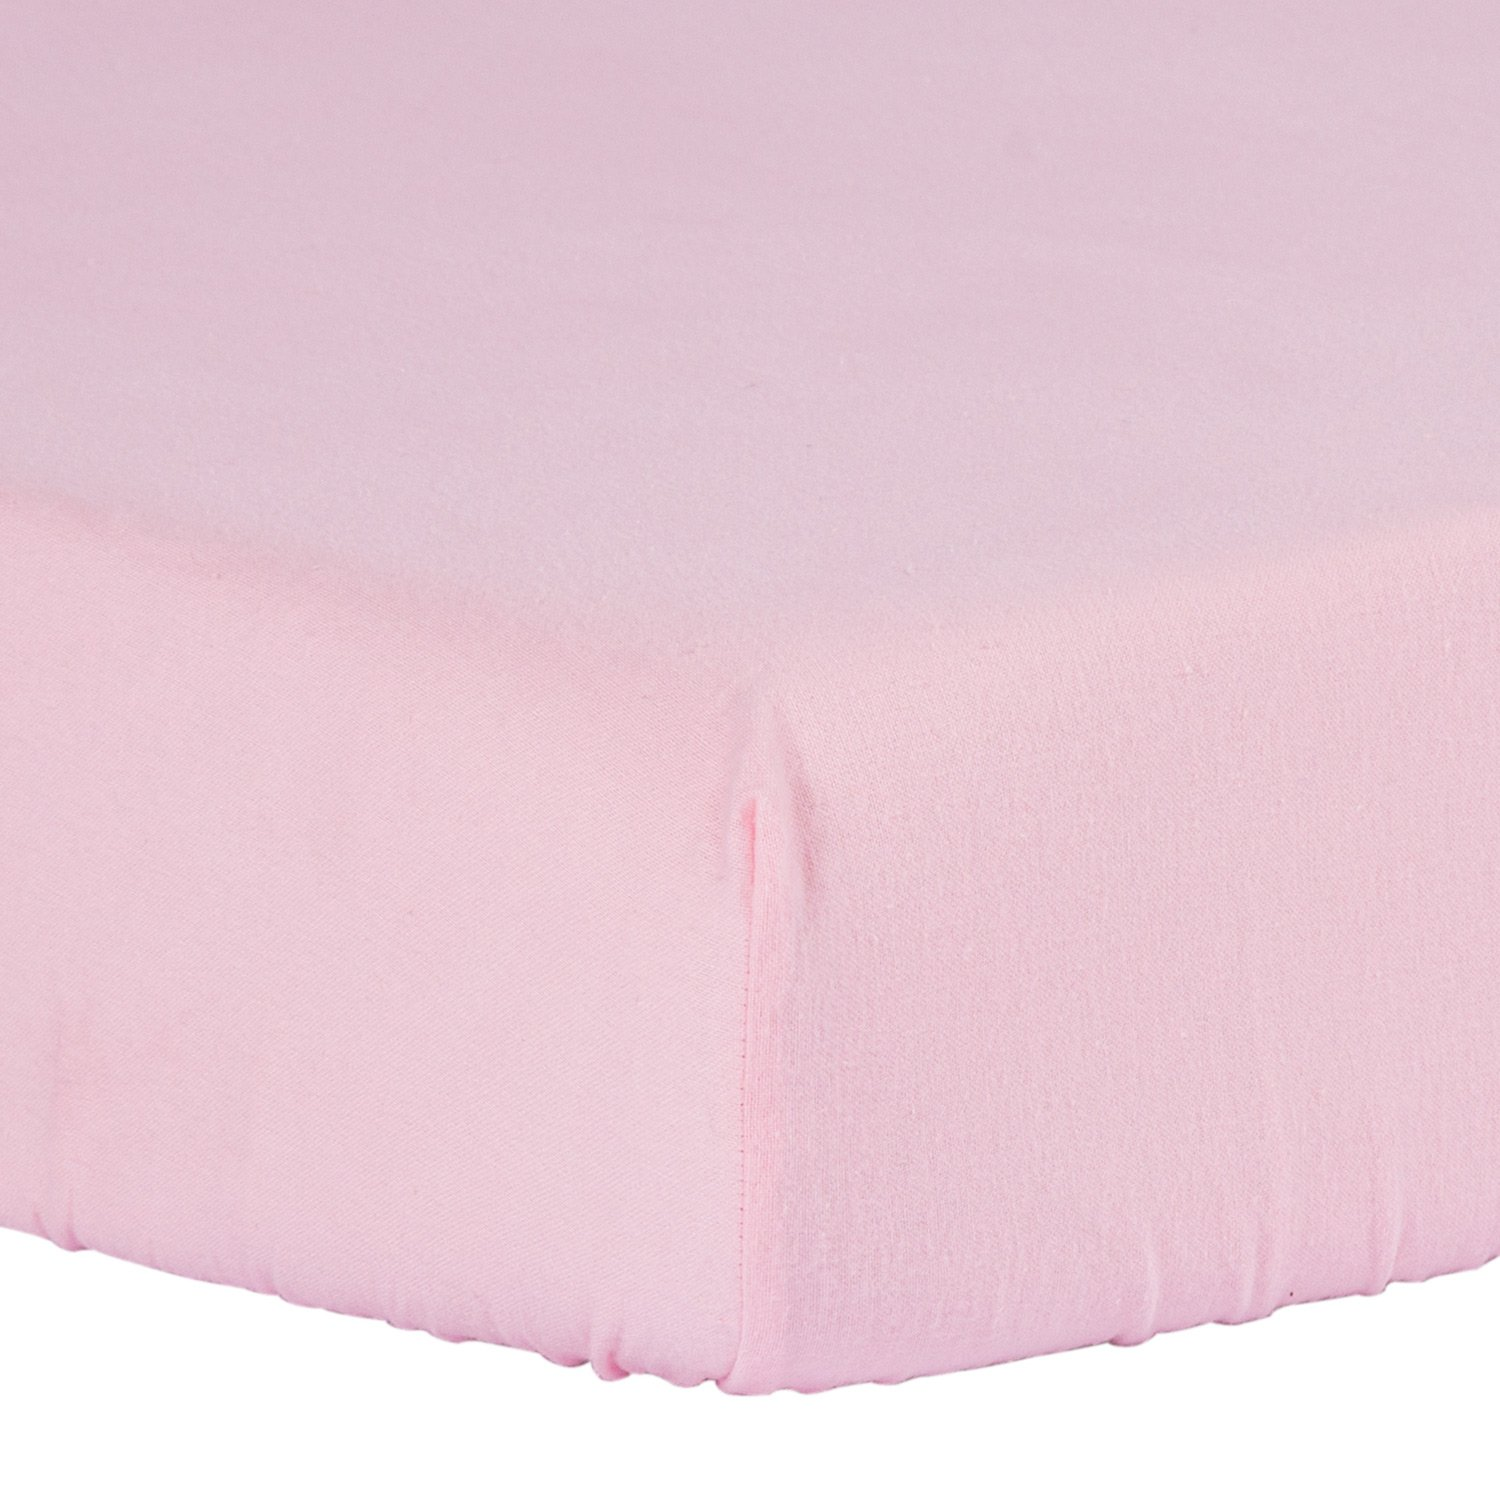 TILLYOU 100% Cotton Flannel Crib Sheet, Ultra Soft Fitted Toddler Sheets, Hypoallergenic Breathable Cozy, 28 x 52in Fit Standard Crib/Toddler Mattress, Pink Smile Textile